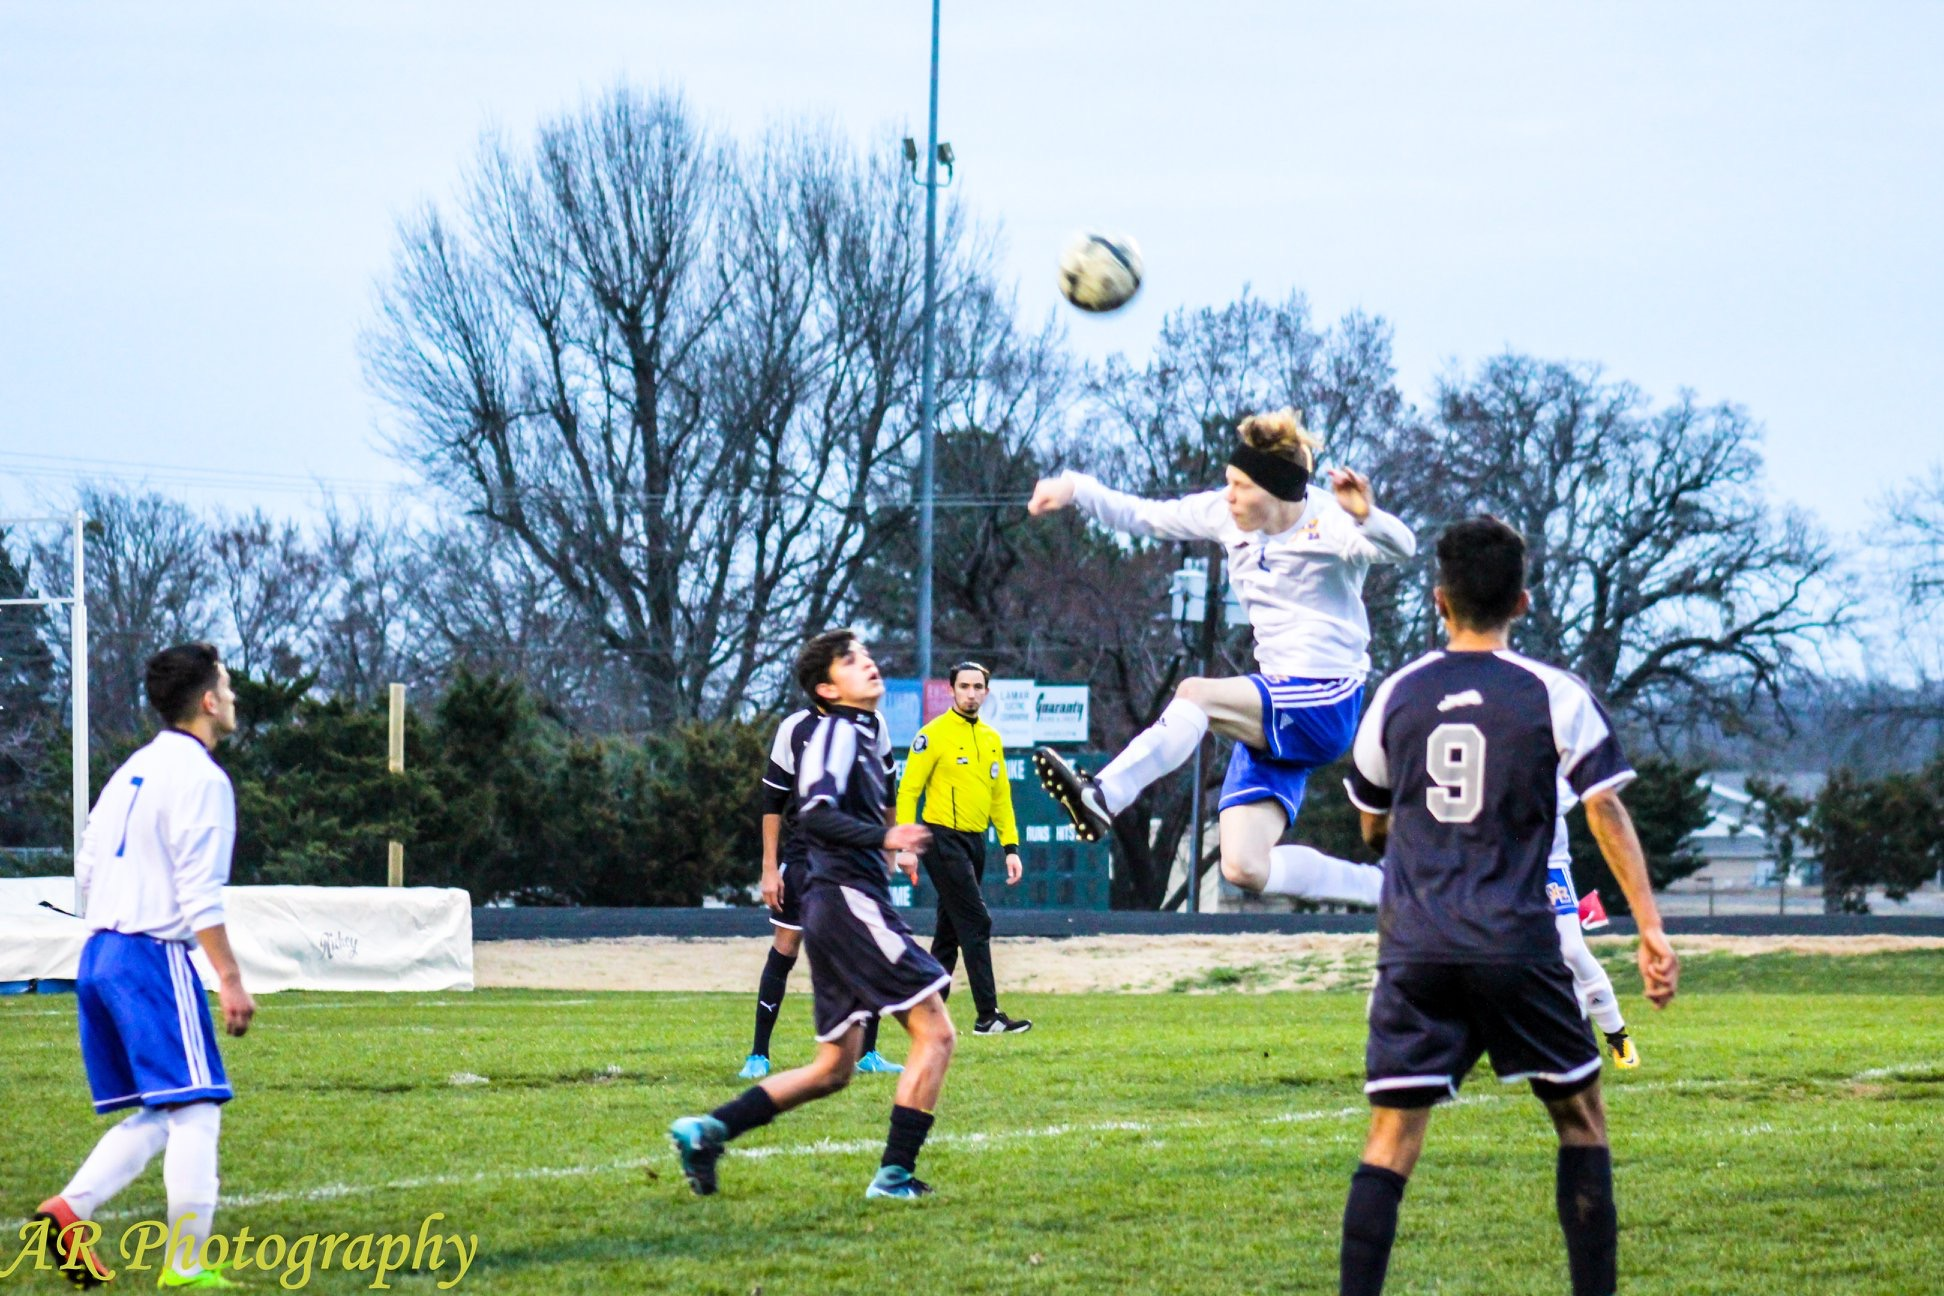 Grant Sulsar with a header in the Paris game